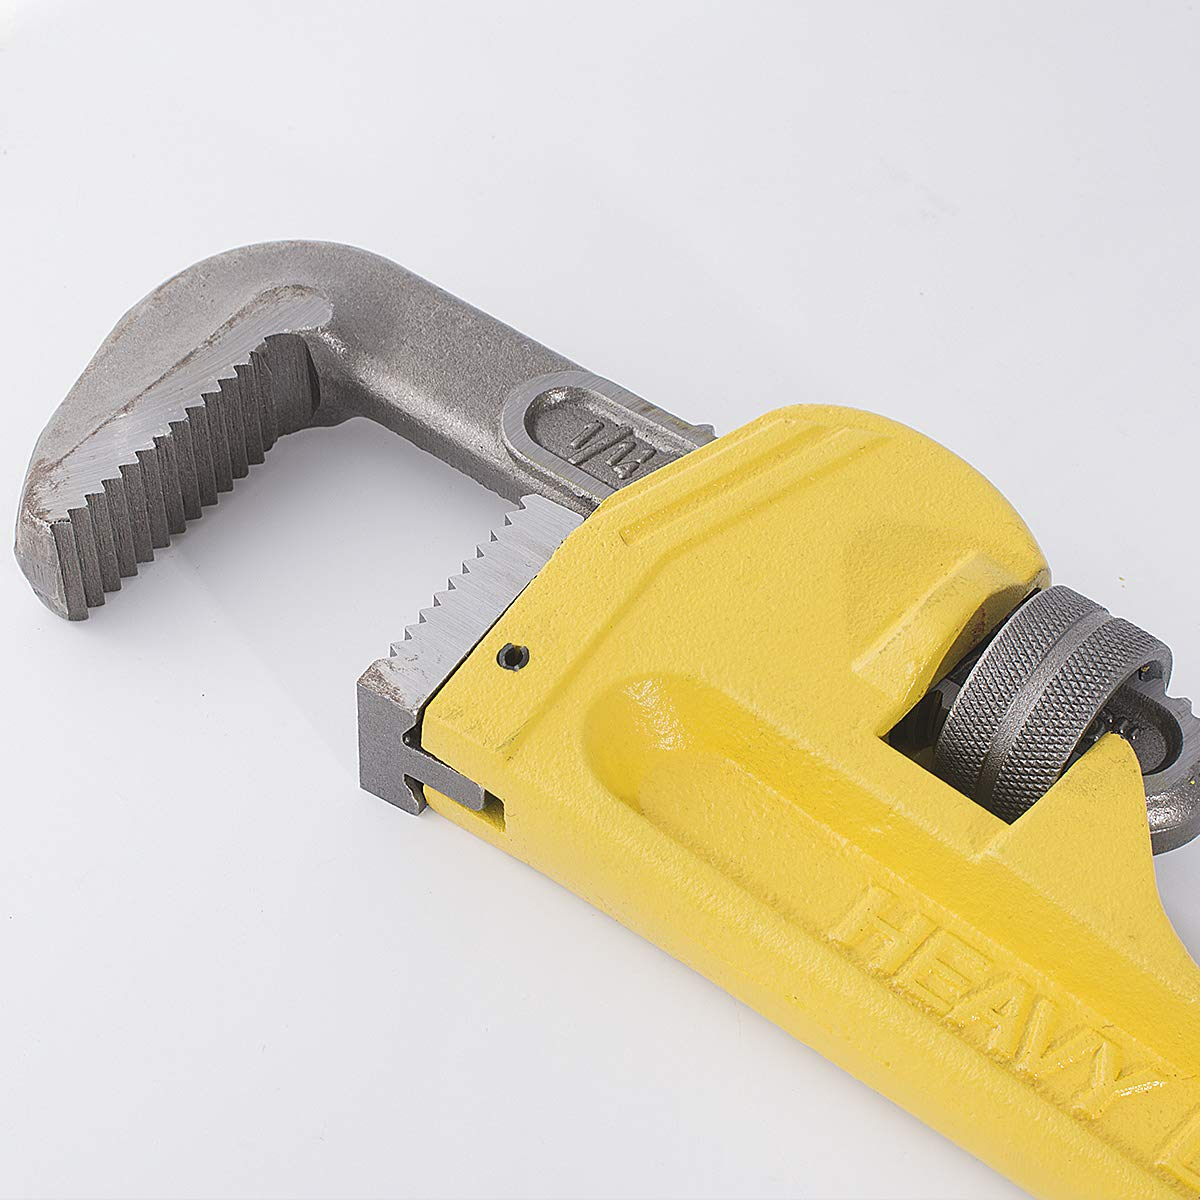 48 Adjustable Plumbing Wrench Convy GJ-0080 Heavy Duty Straight Pipe Wrench